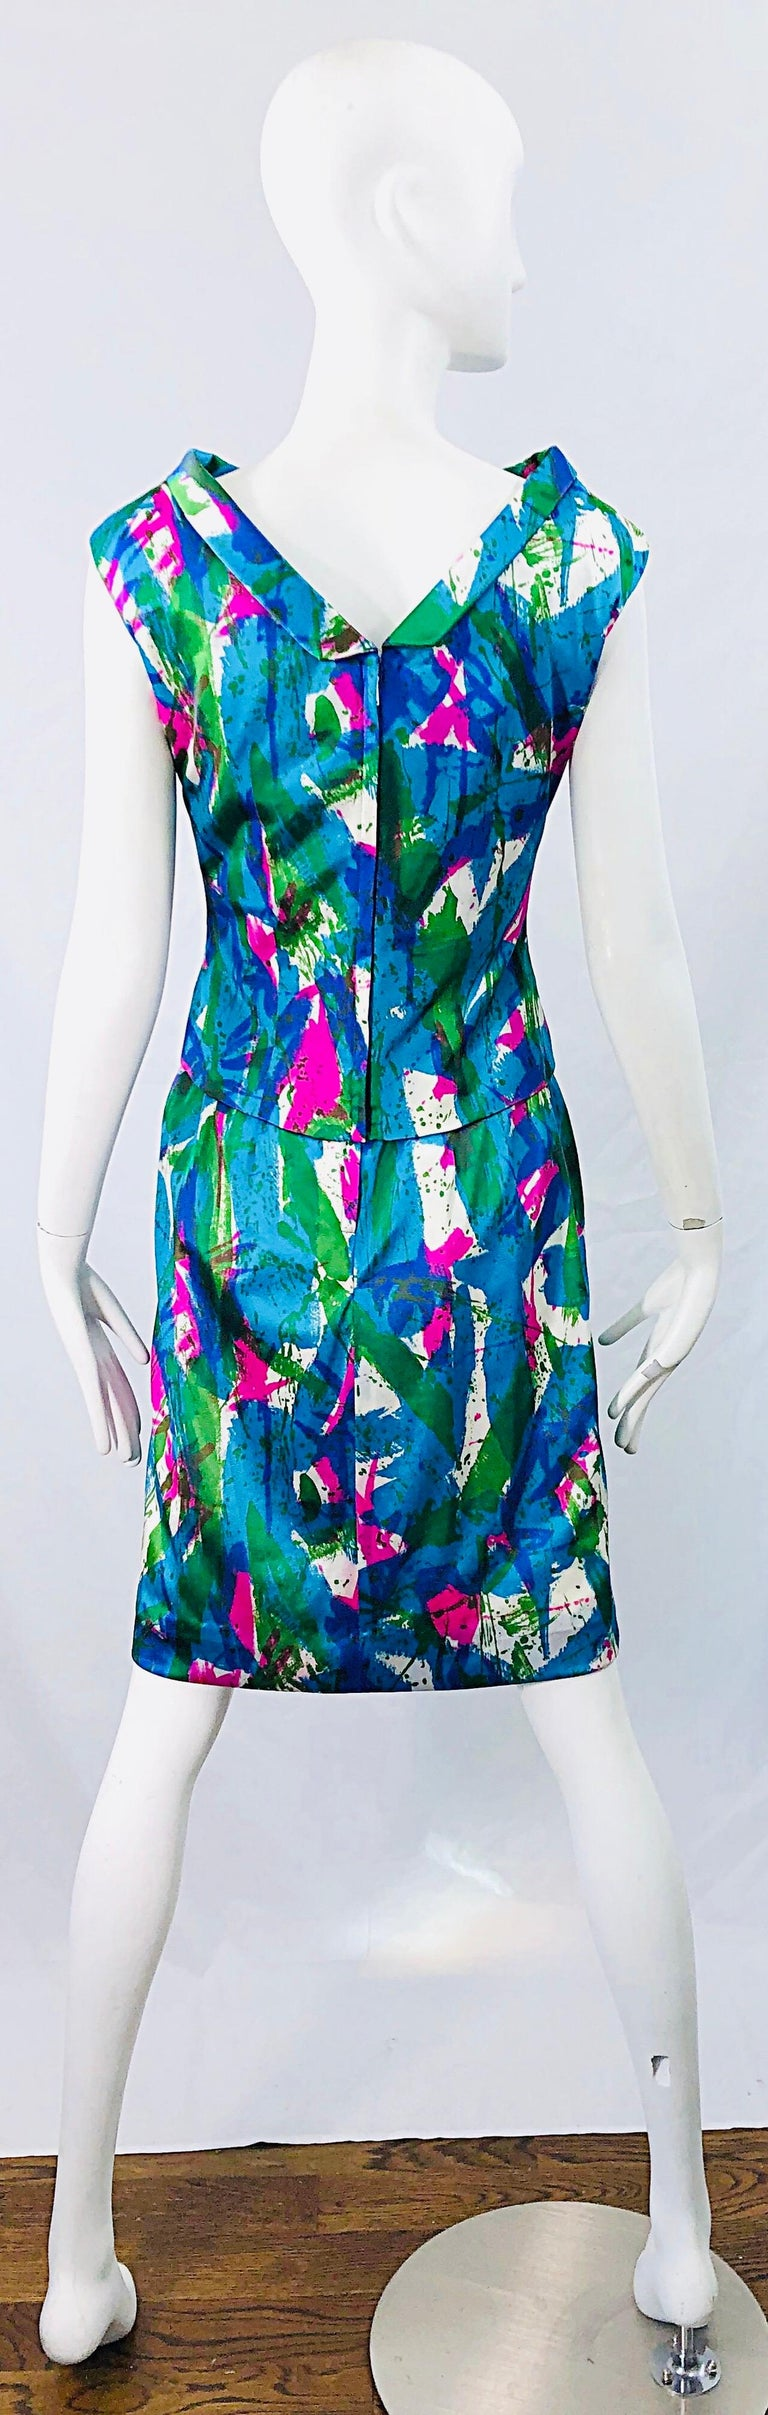 Chic 1960s Neon Abstract Print Two Piece Vintage 60s Sheath Dress + Top Blouse  For Sale 11